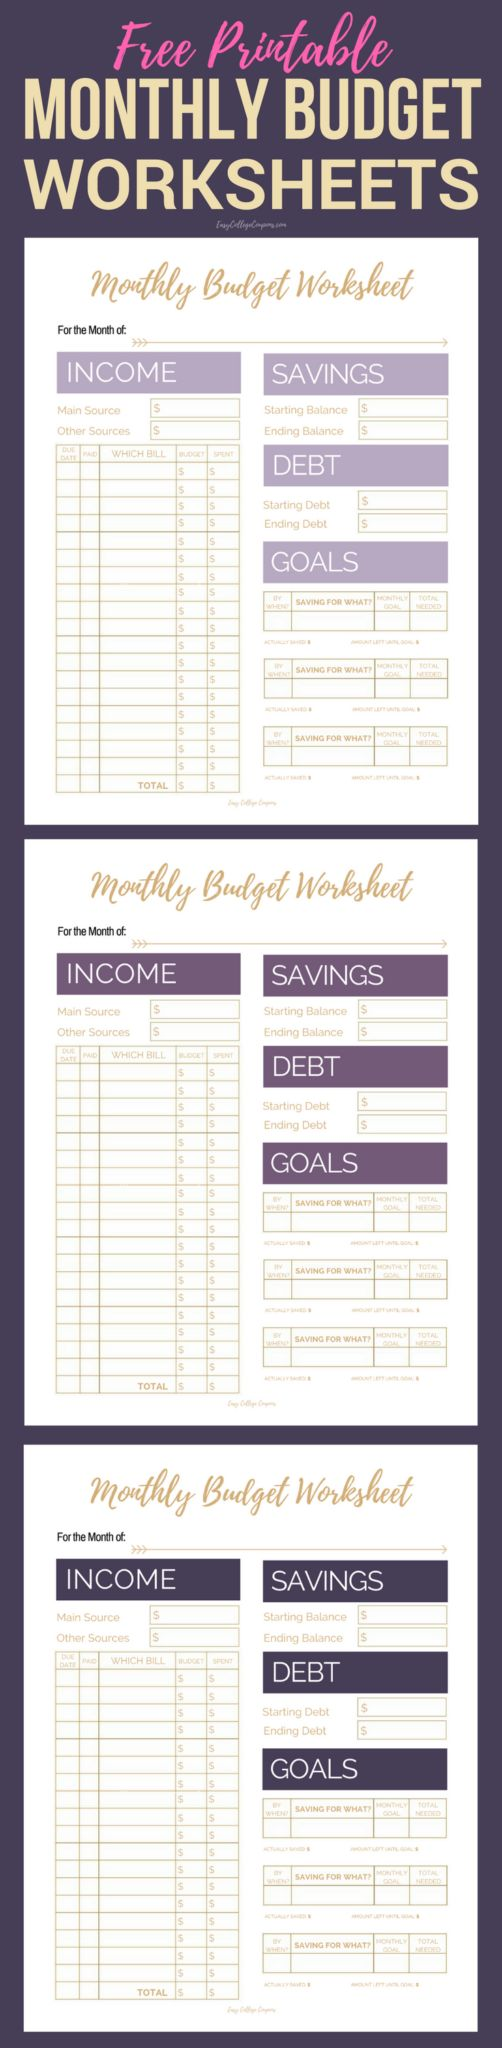 Free Printable Budget Worksheet, Sheets, Planner | Simple College Budgeting | Finance, Saving Money via @esycollegelife